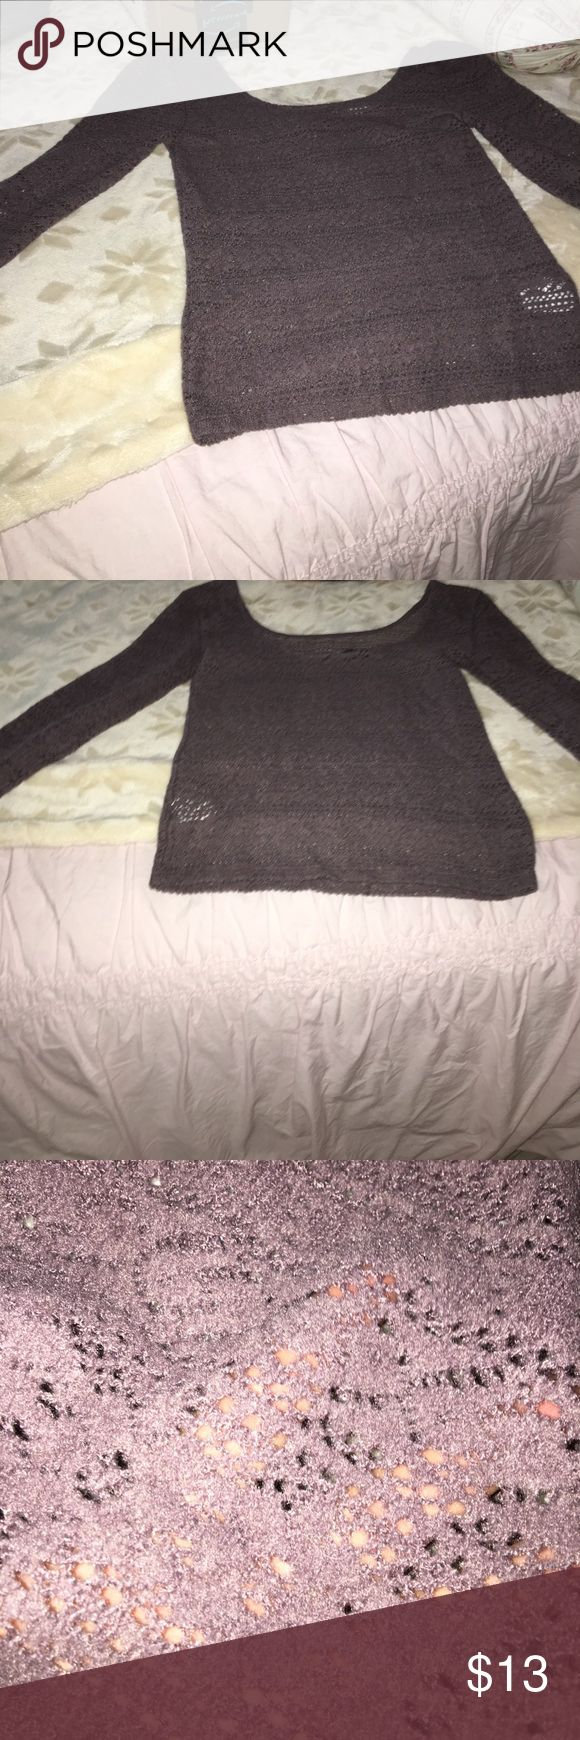 Lacy Long Sleeve Crop Top NWOT •Crop Top with cutouts •Purple •NWOT •Purchased from American Eagle Outfitters store/website •Size Small American Eagle Outfitters Tops Crop Tops